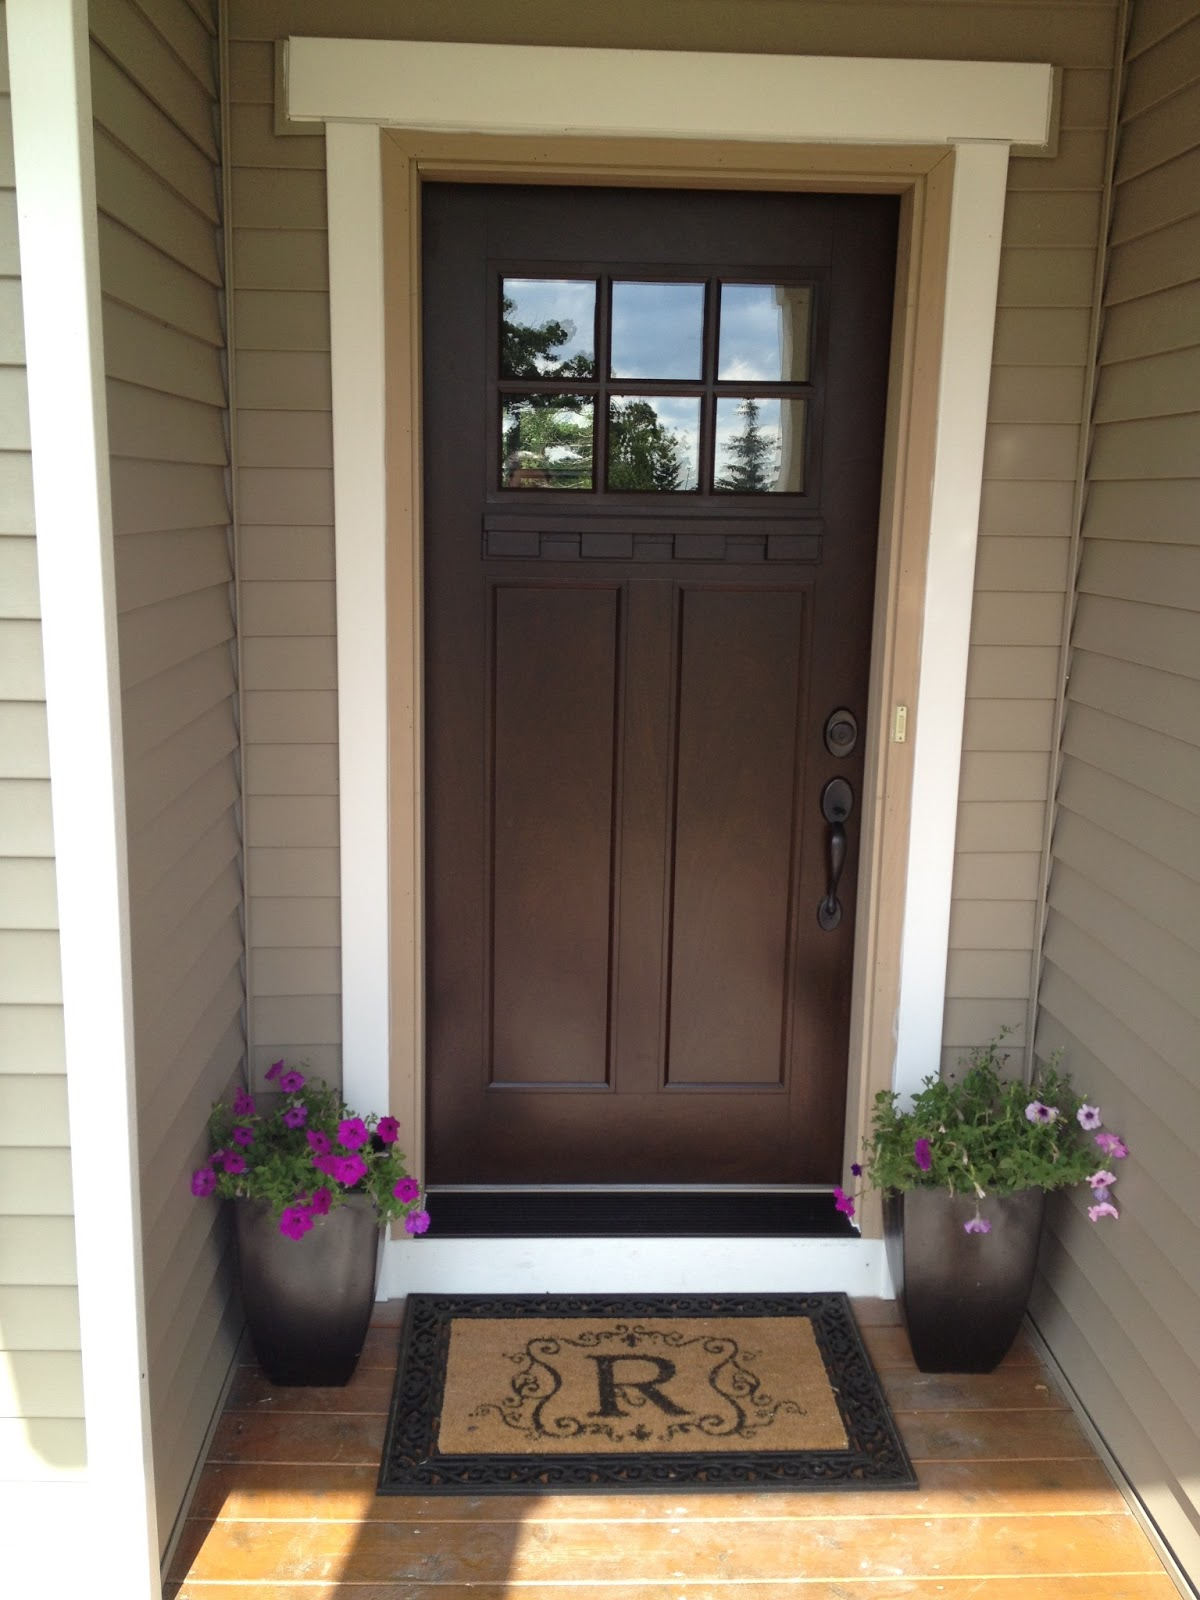 Our Styled Suburban Life: New Front Door!